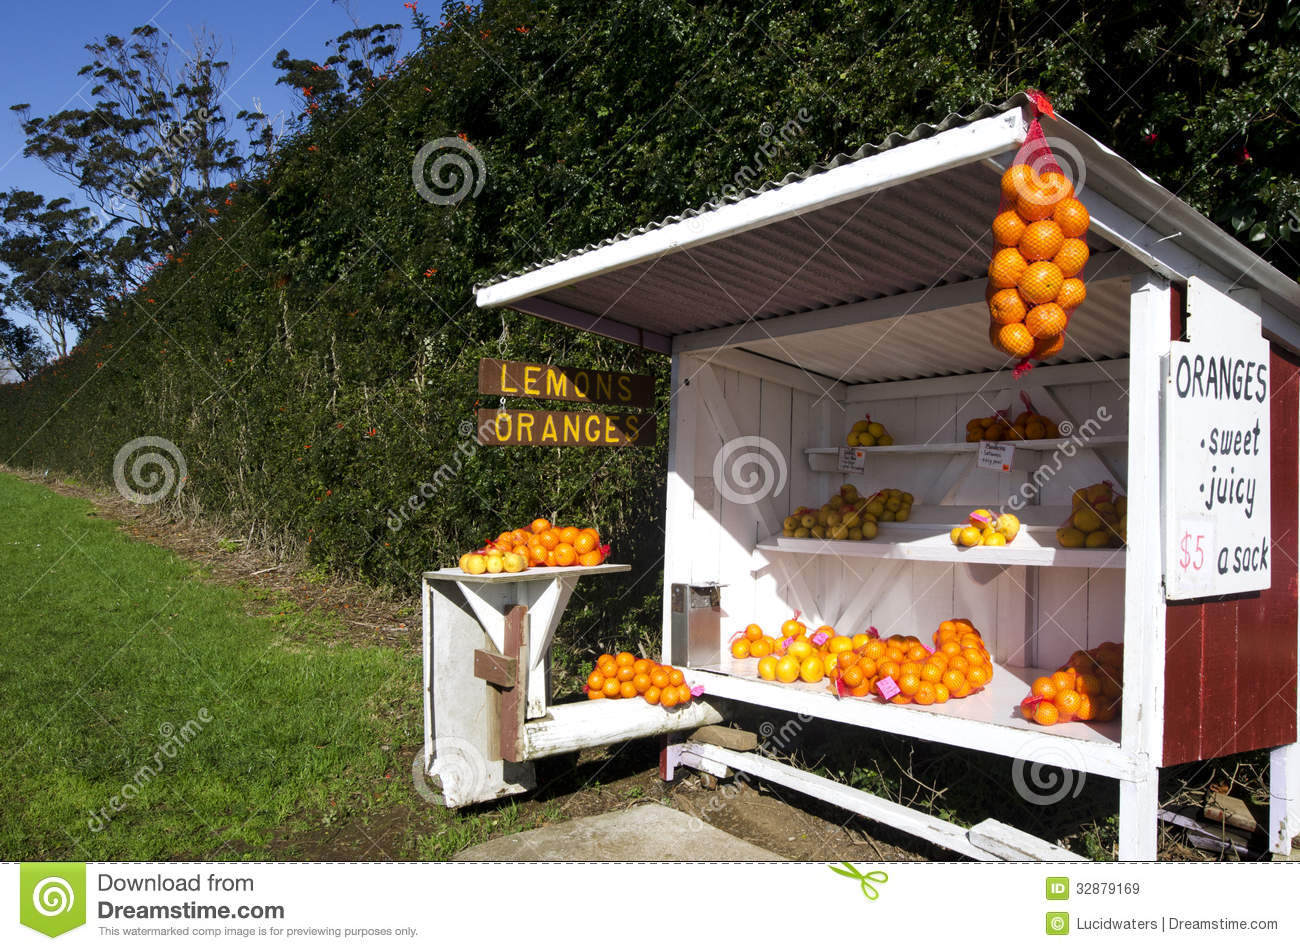 How to Start and Run a Produce Stand